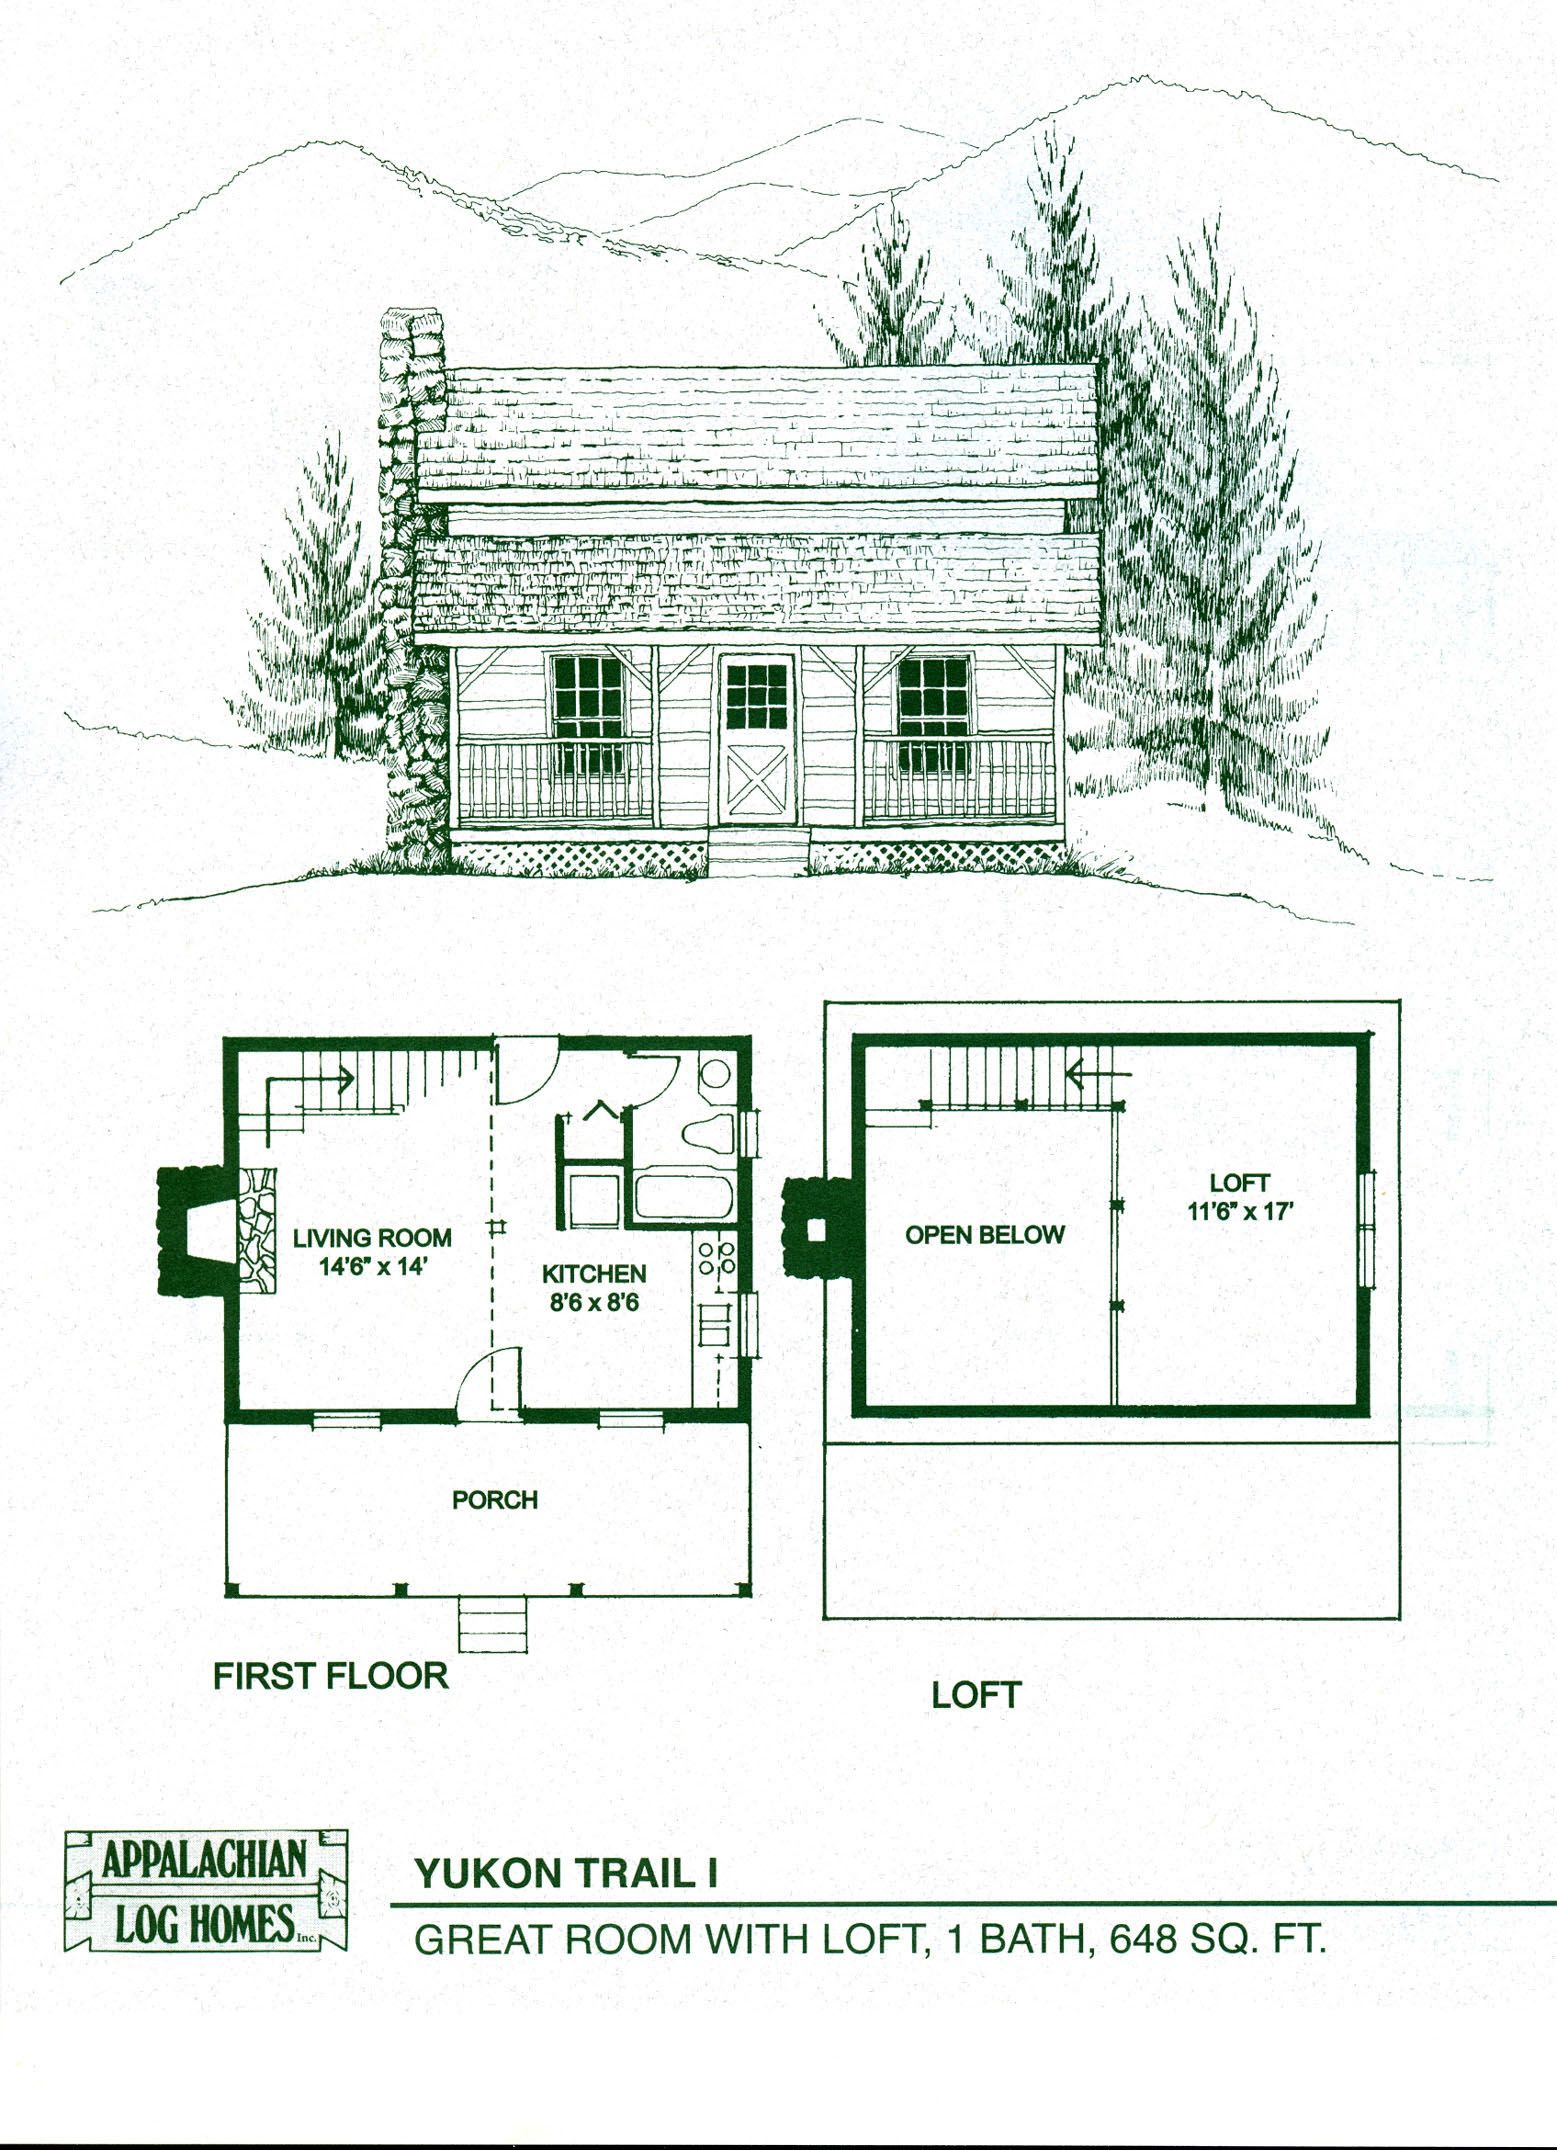 Log home floor plans log cabin kits appalachian log for One room cabin floor plans